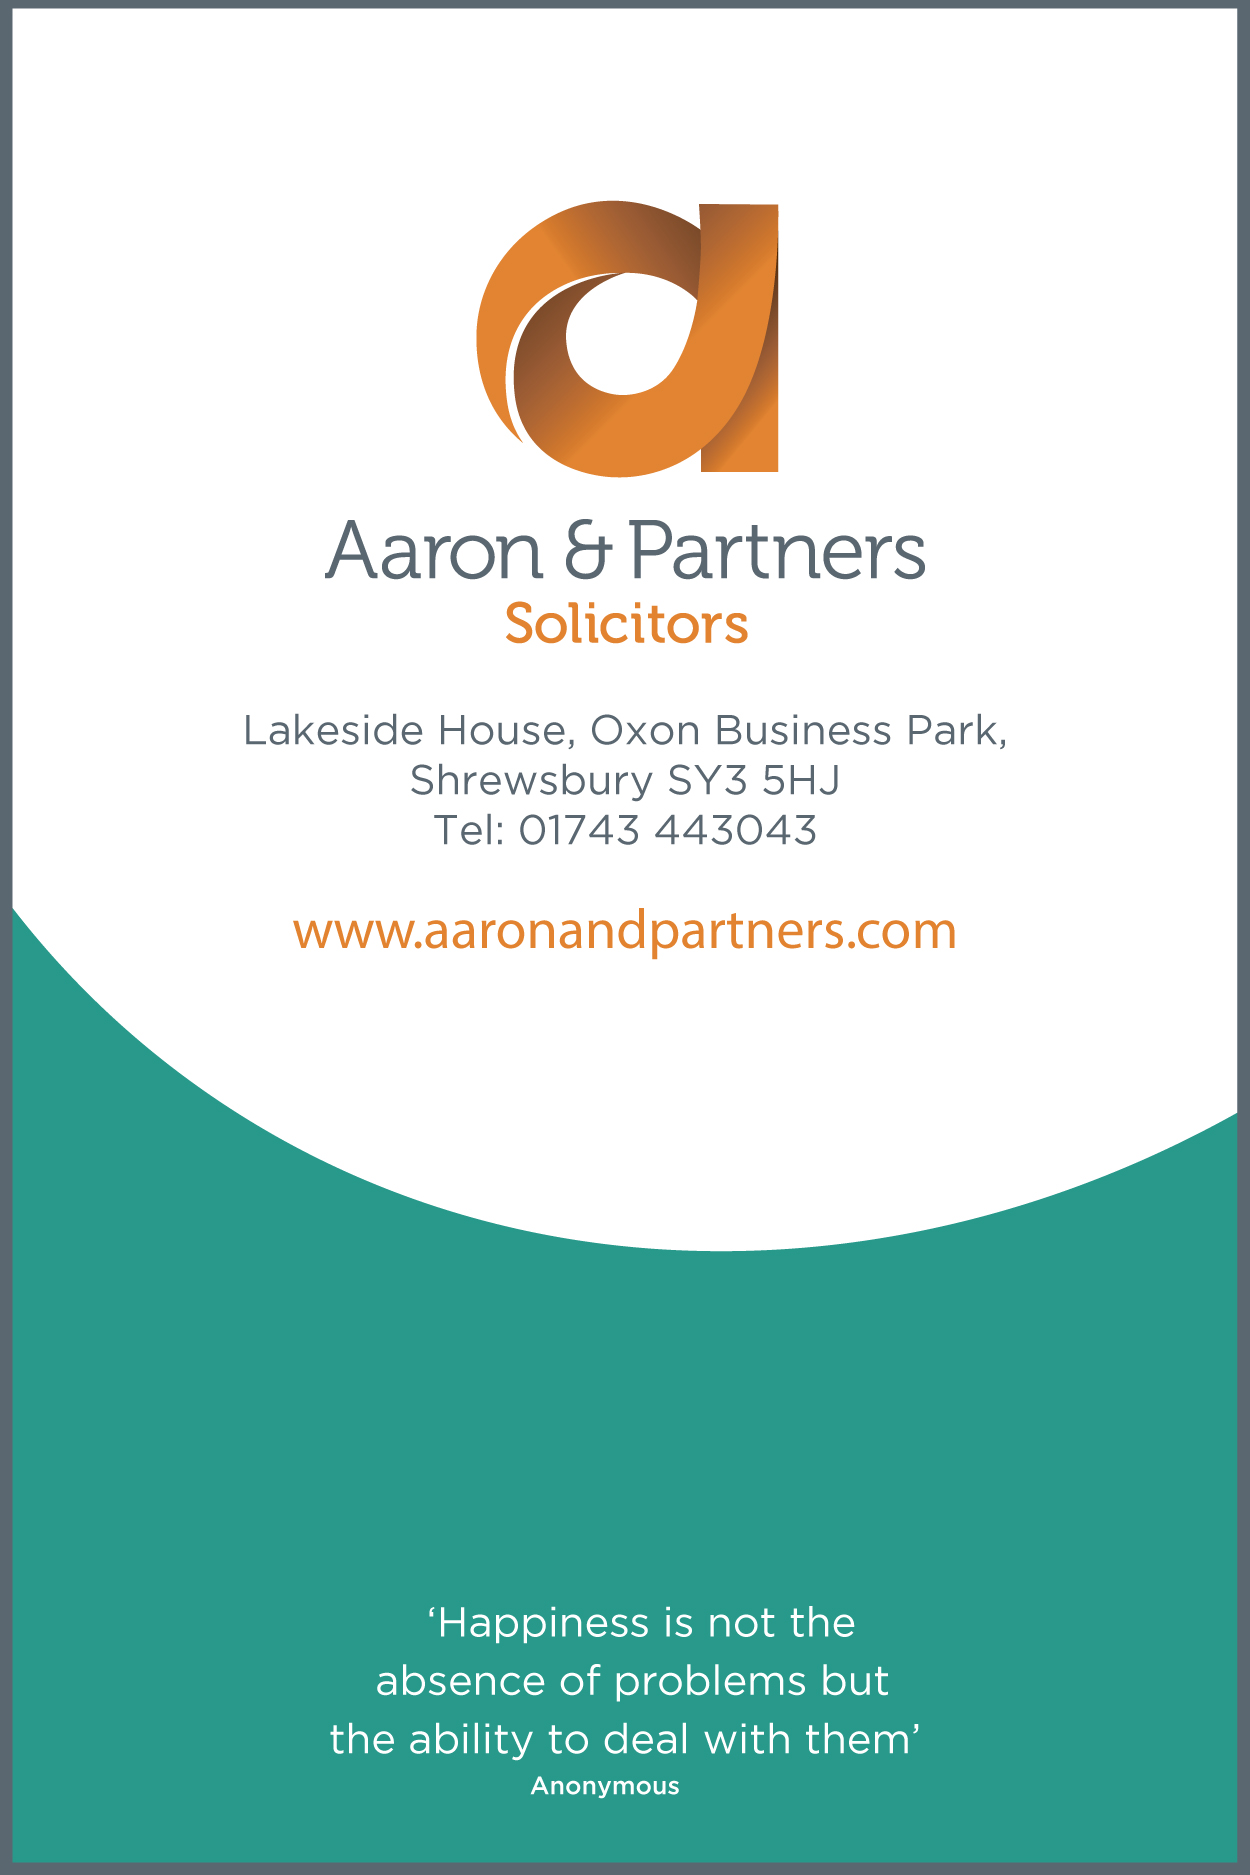 http://www.aaronandpartners.com